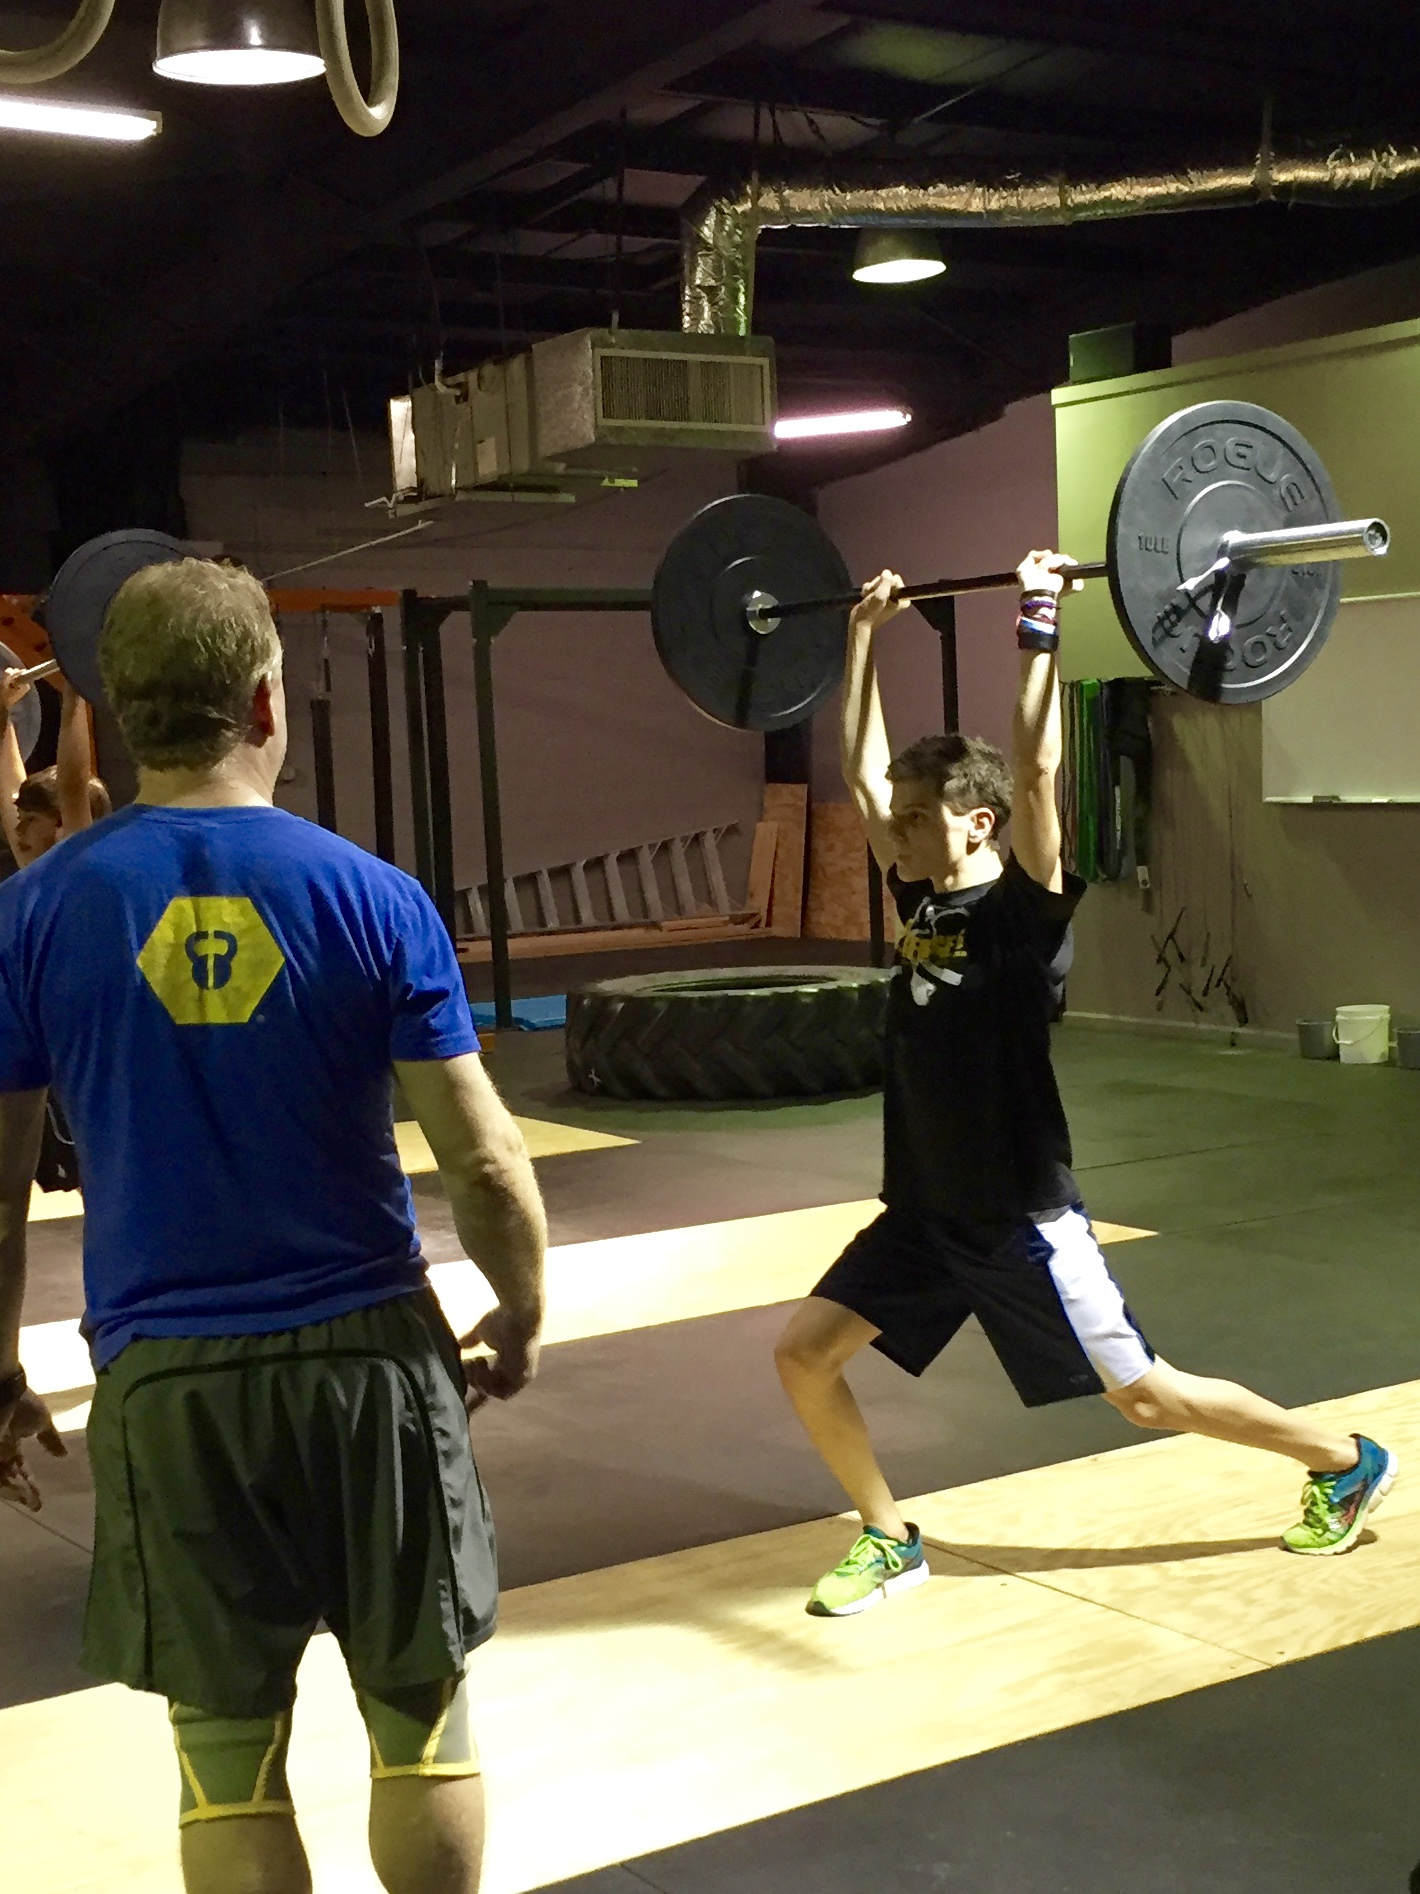 BA CrossFit Collierville OCR